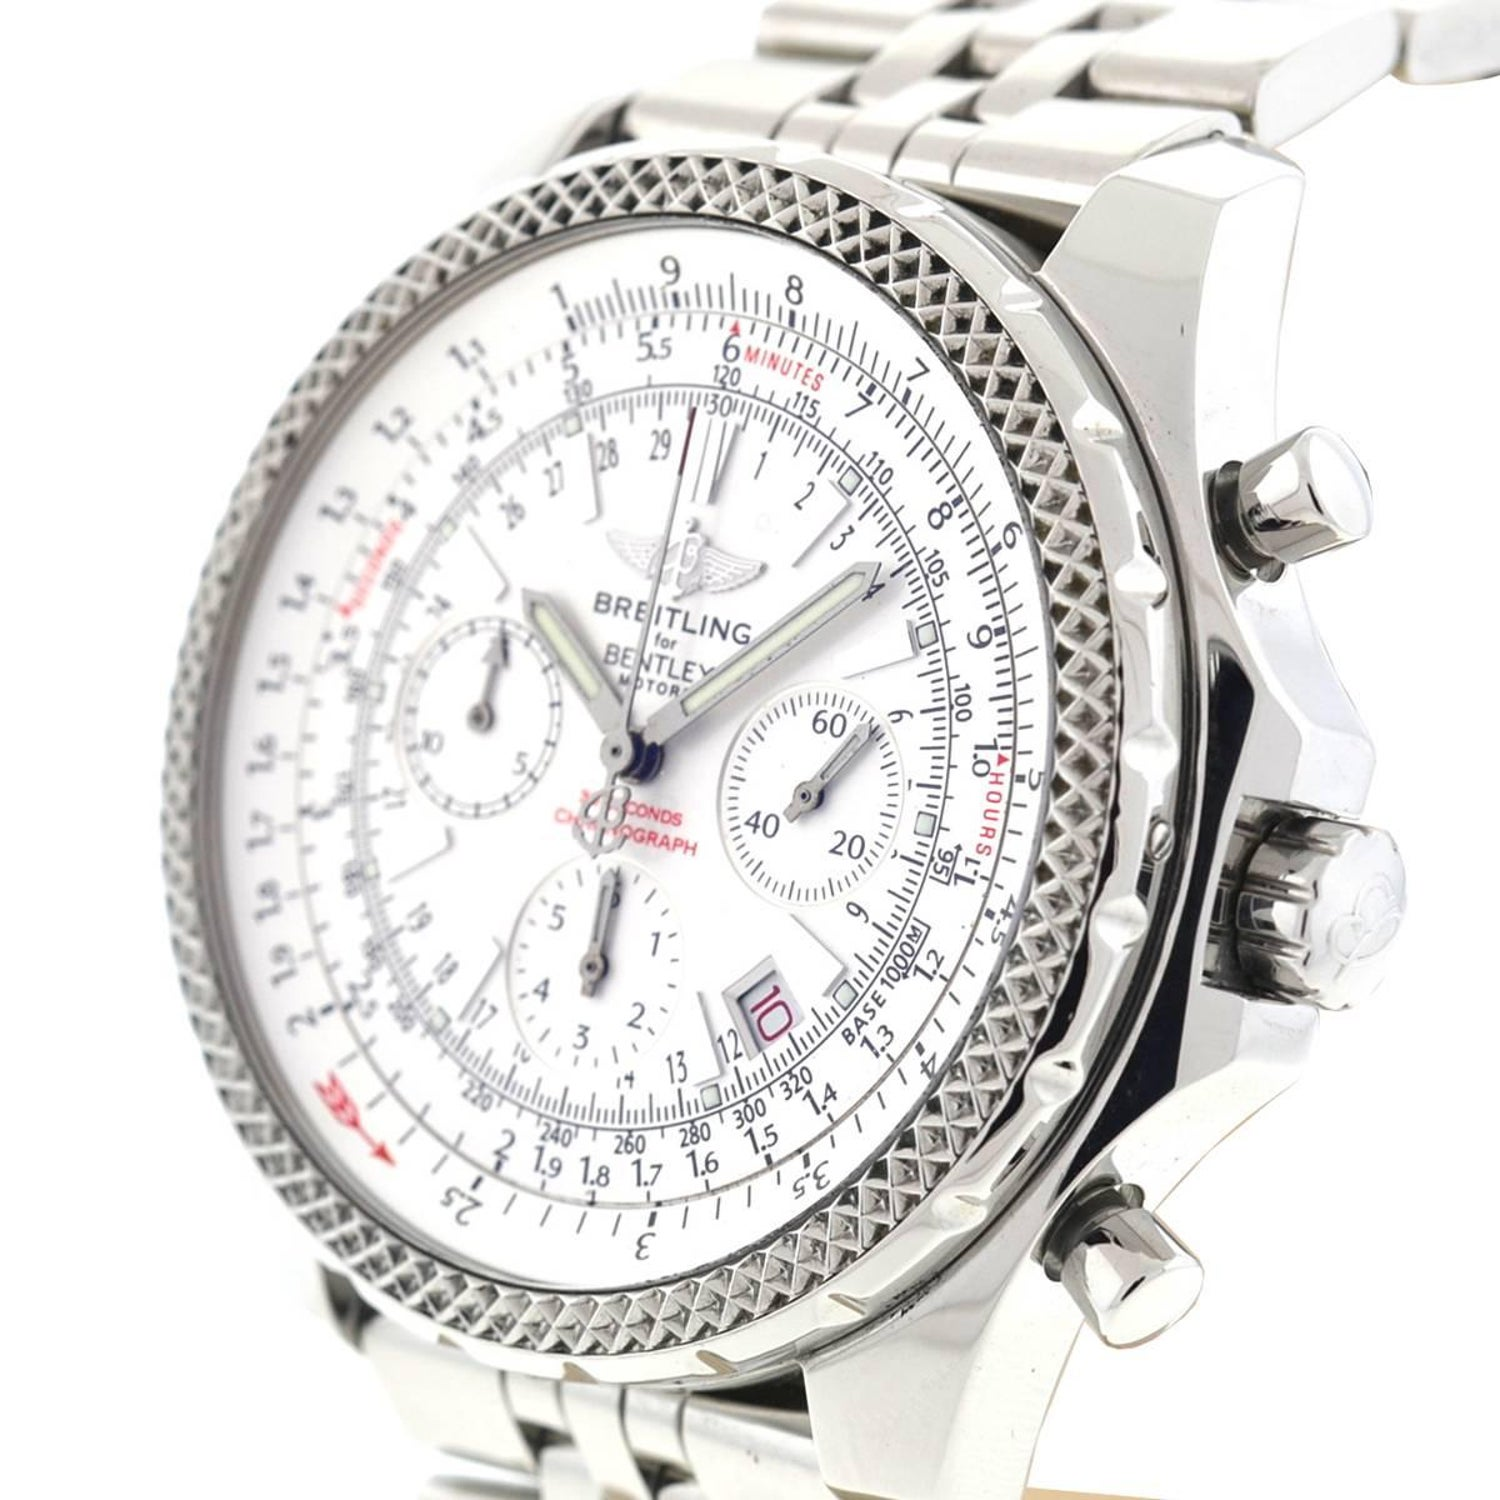 watch watches of awesome motors beautiful special breitling inspirational replica cheap for bentley a edition